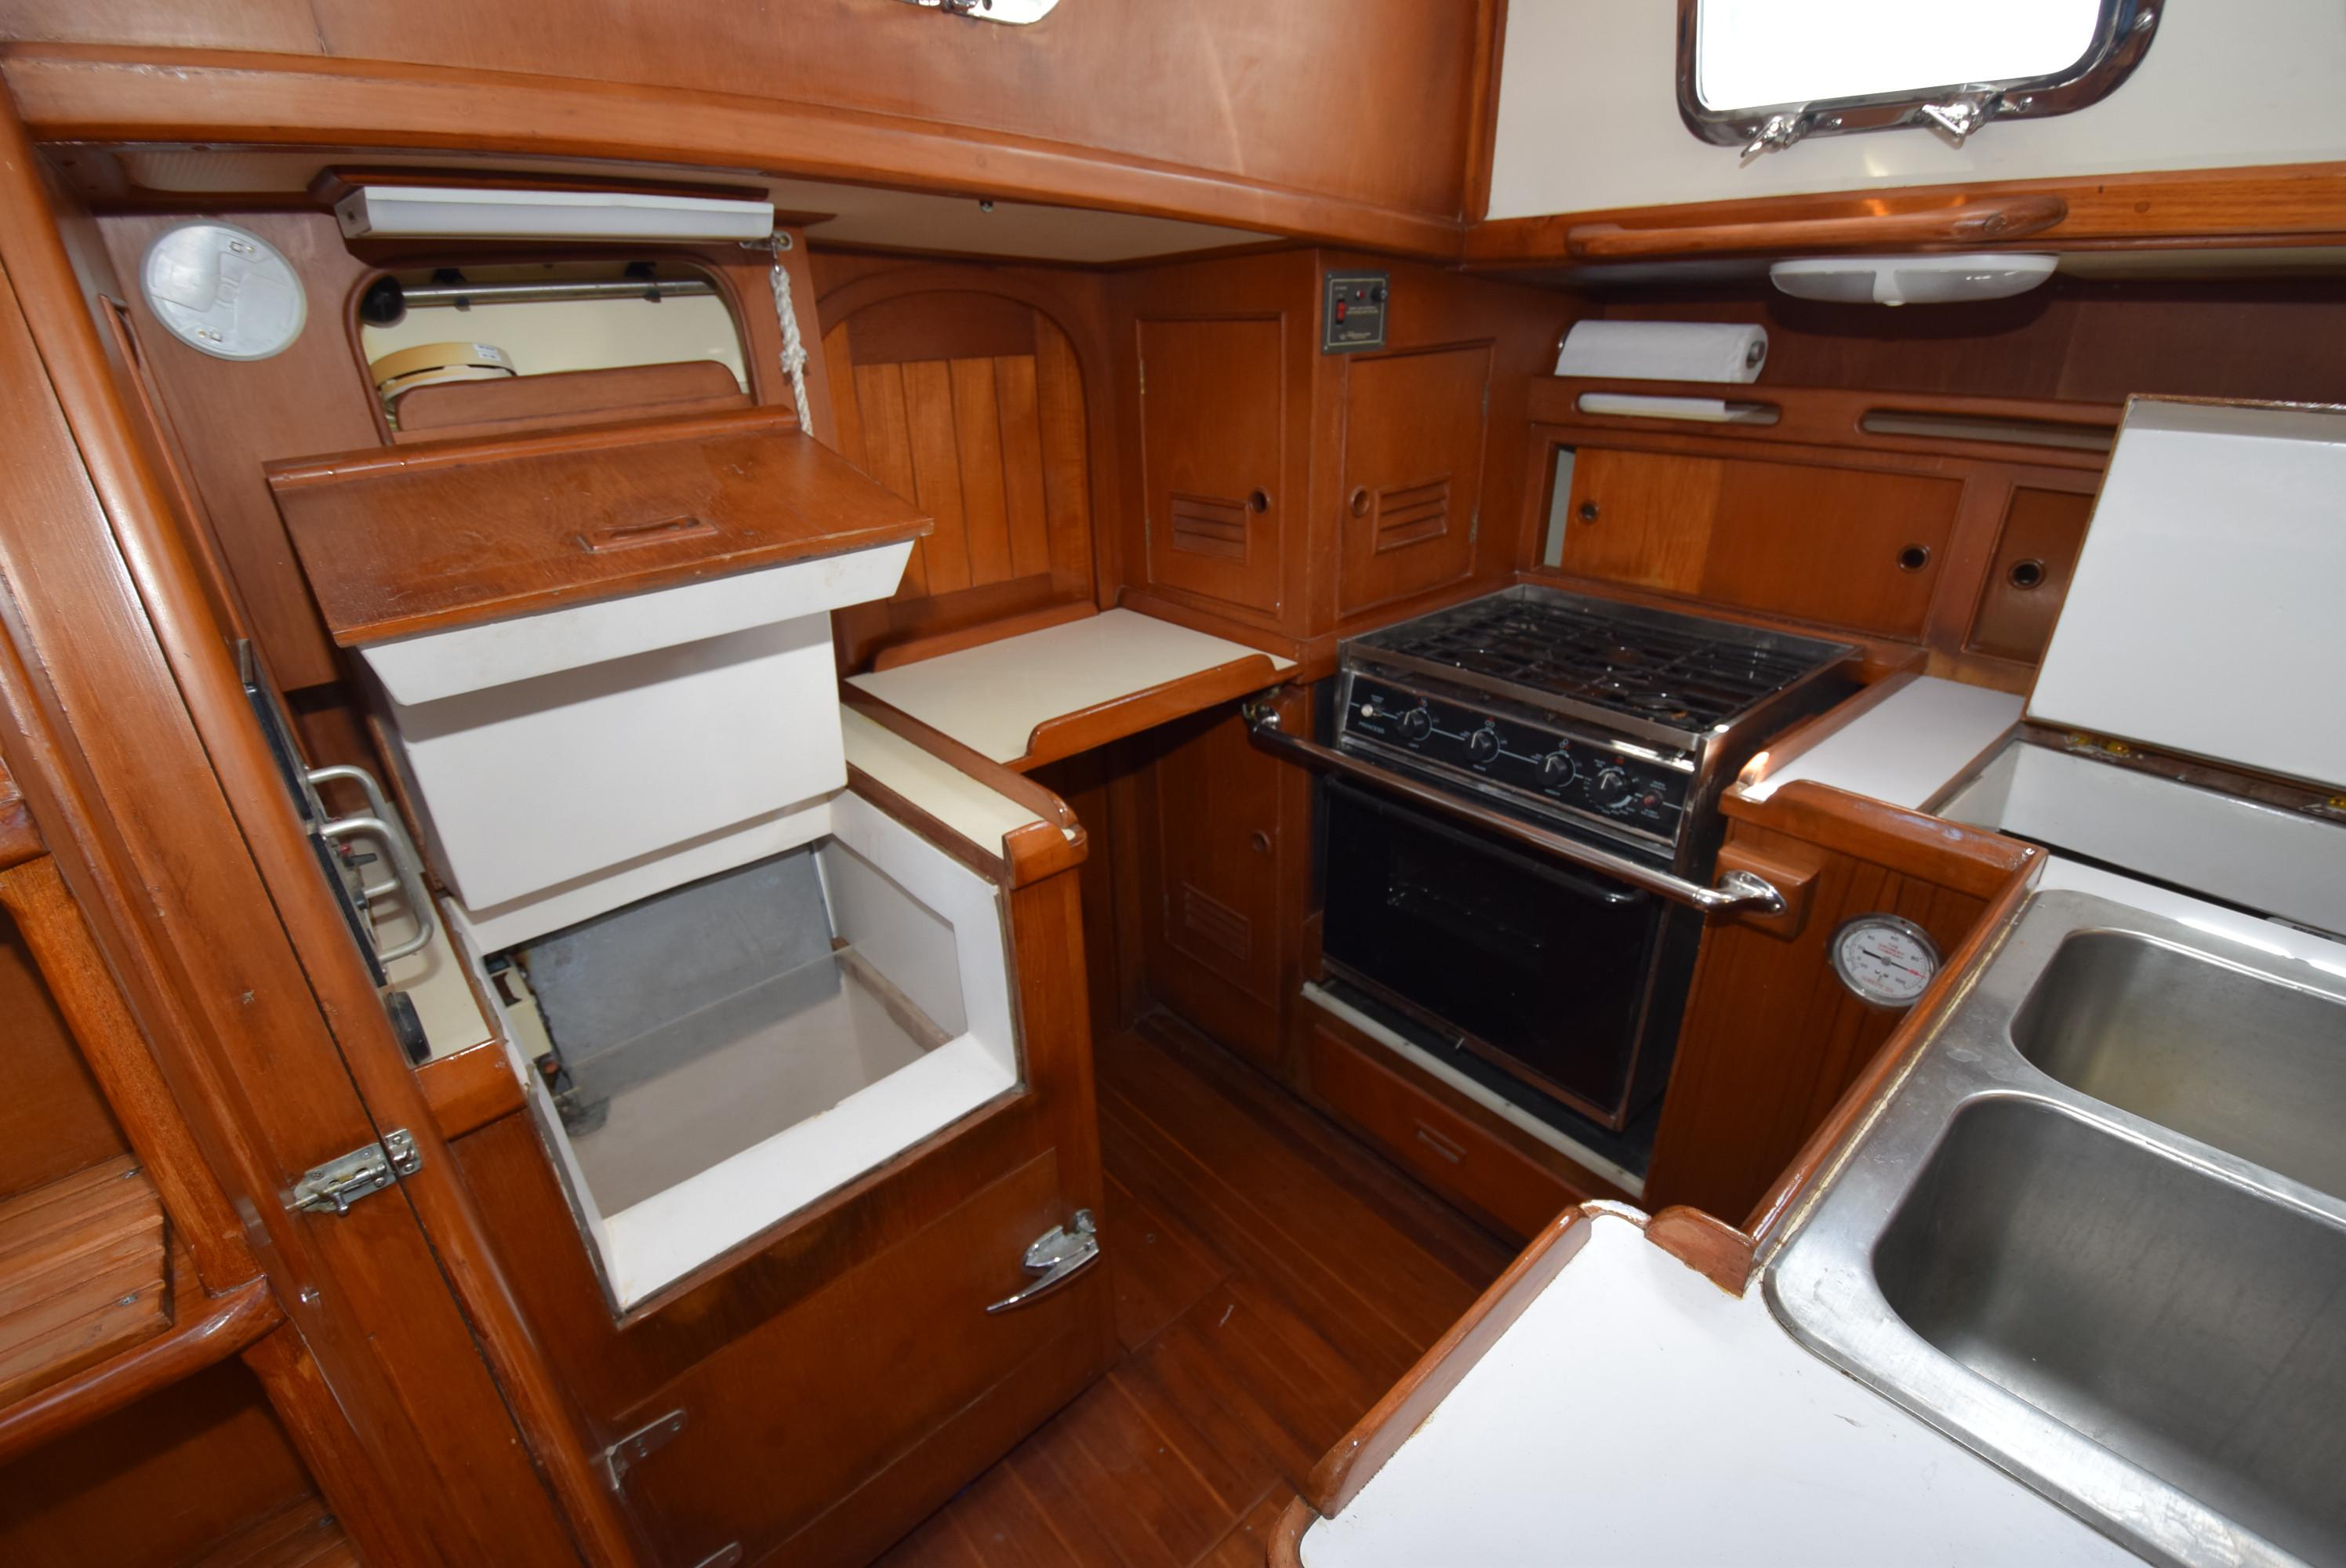 46 Kelly Peterson 1982 Tara Lighthouse Point Florida Sold On 2018 Fuel Filters